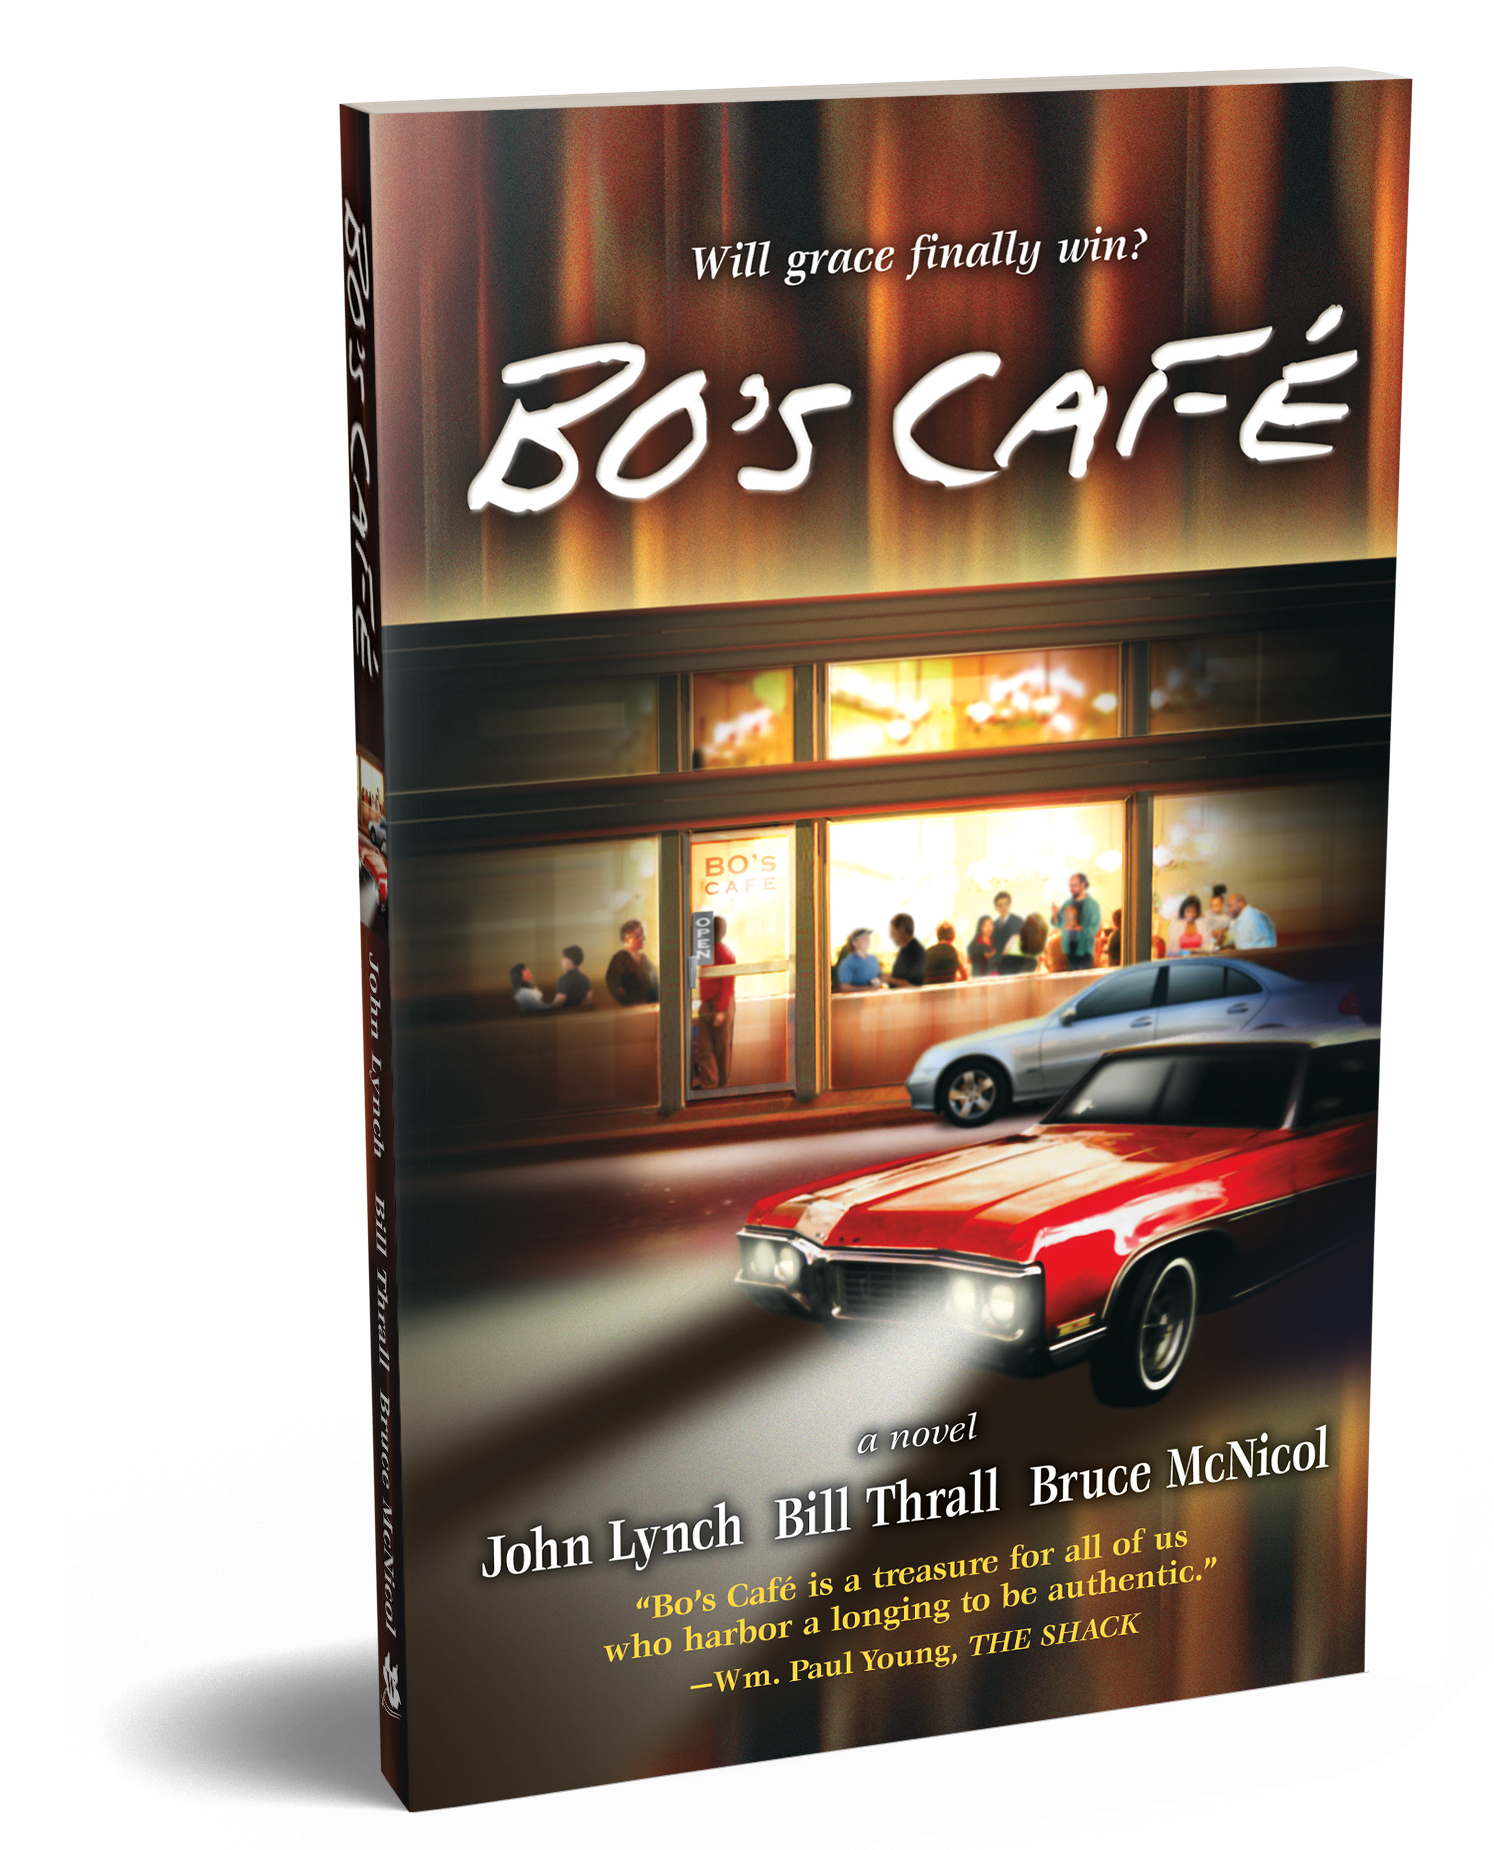 Bo's Café   High powered exec Steven Kerner has no idea how his unresolved anger threatens his marriage, his relationship with his children, or his high-profile way of life.  Bo's Cafe  guides us through Steven's journey as he struggles to trust that God and others have answers for his life, marriage, and parenting that he cannot find on his own.